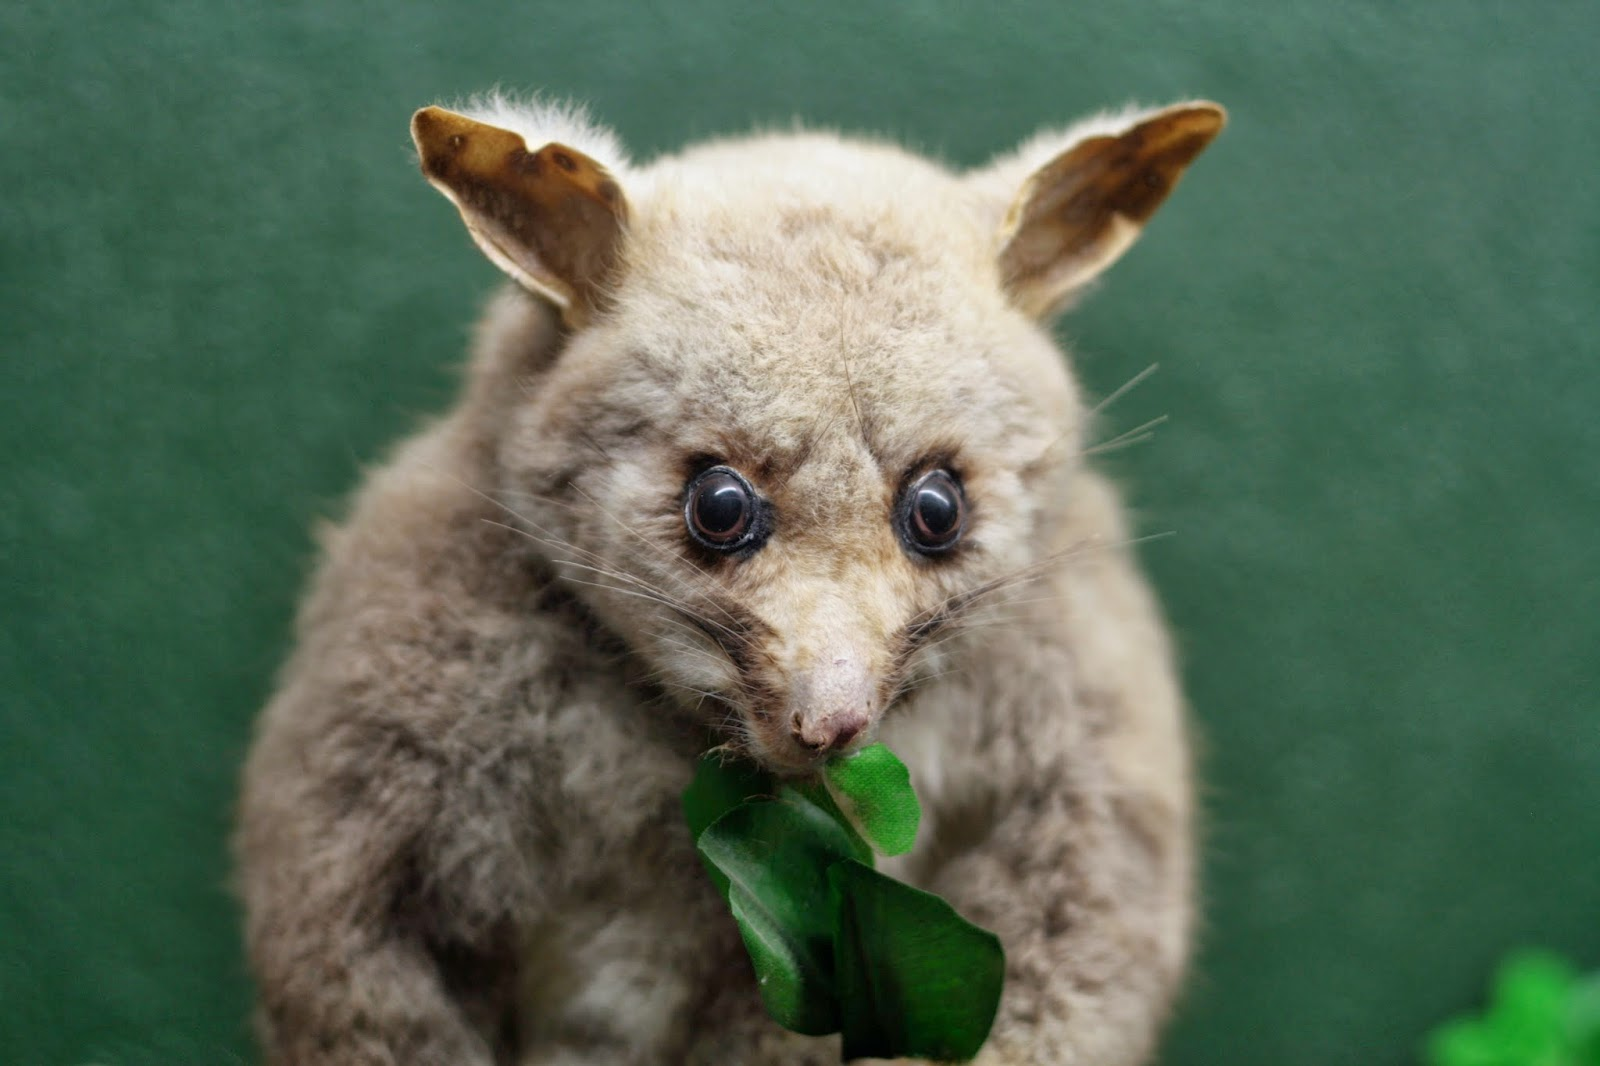 A soft looking taxidermied possum munches a plastic leaf.